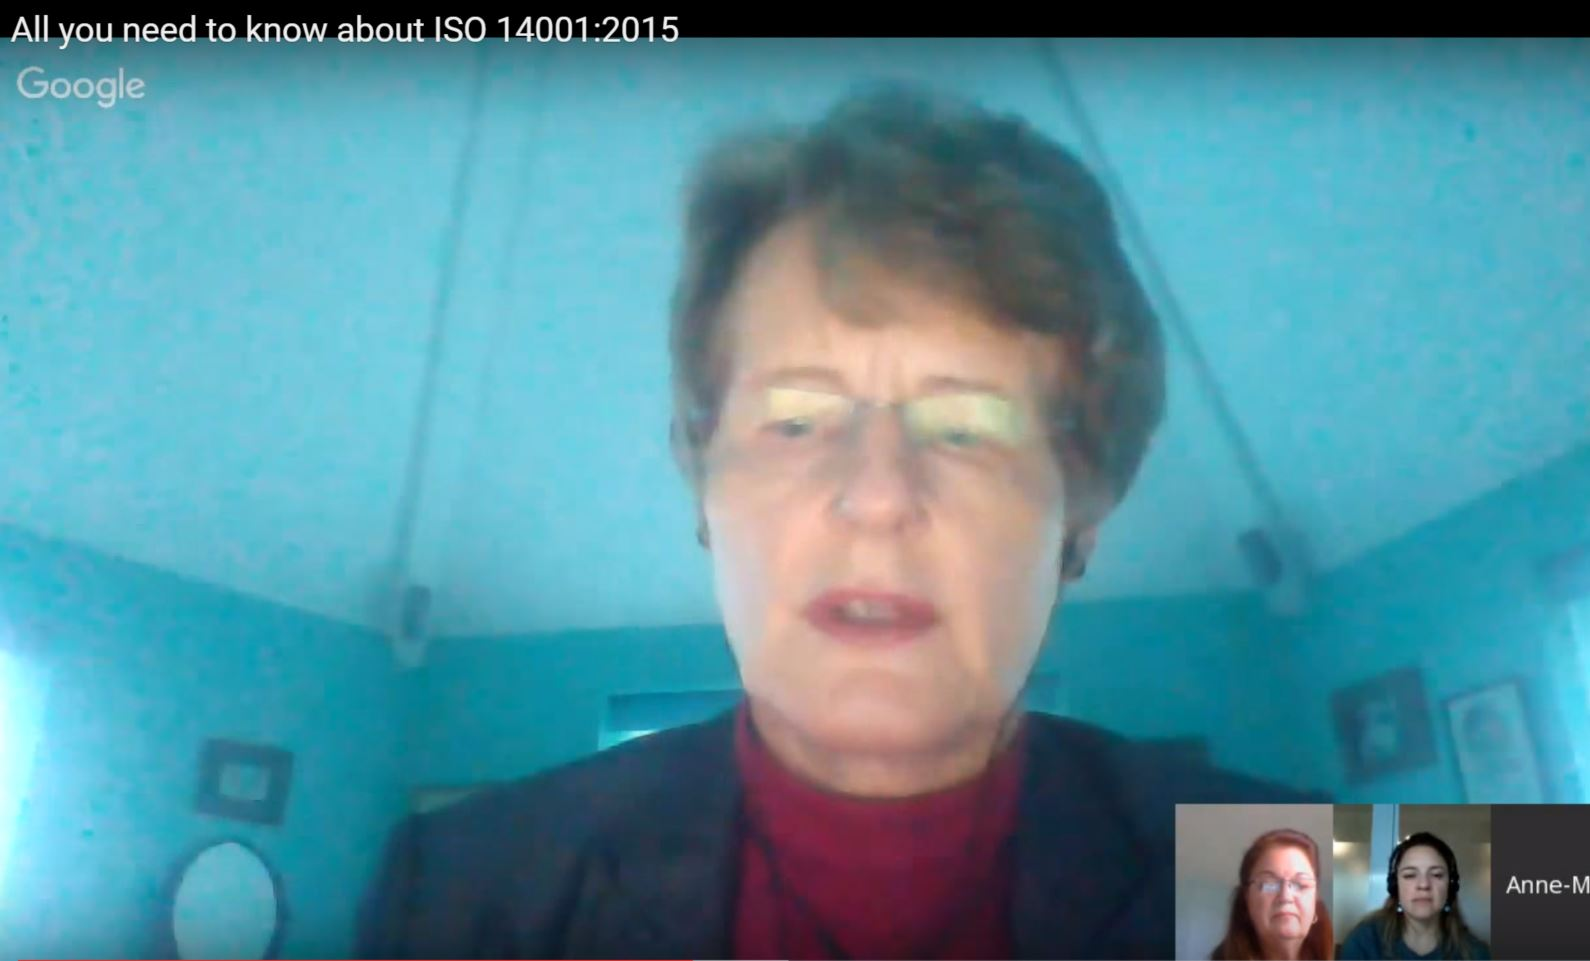 Video: Google hangout - All you need to know about ISO 14001:2015